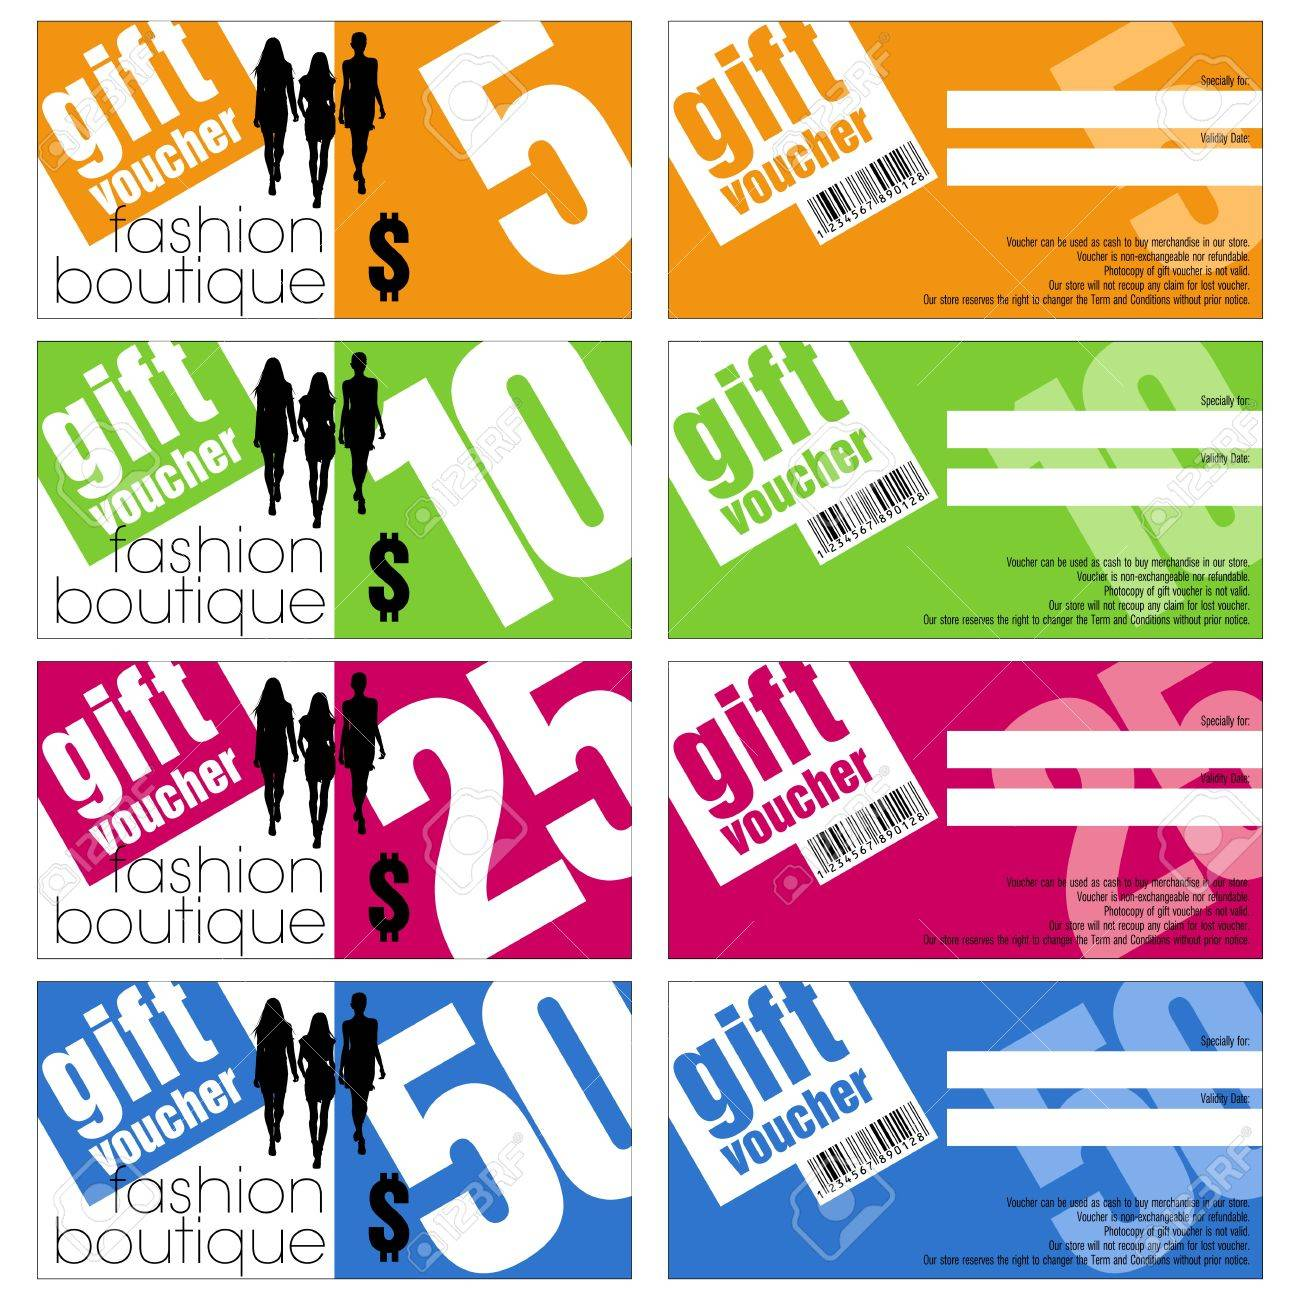 Voucher Design Photos and Pictures Royalty Free Voucher – Design Gift Vouchers Free